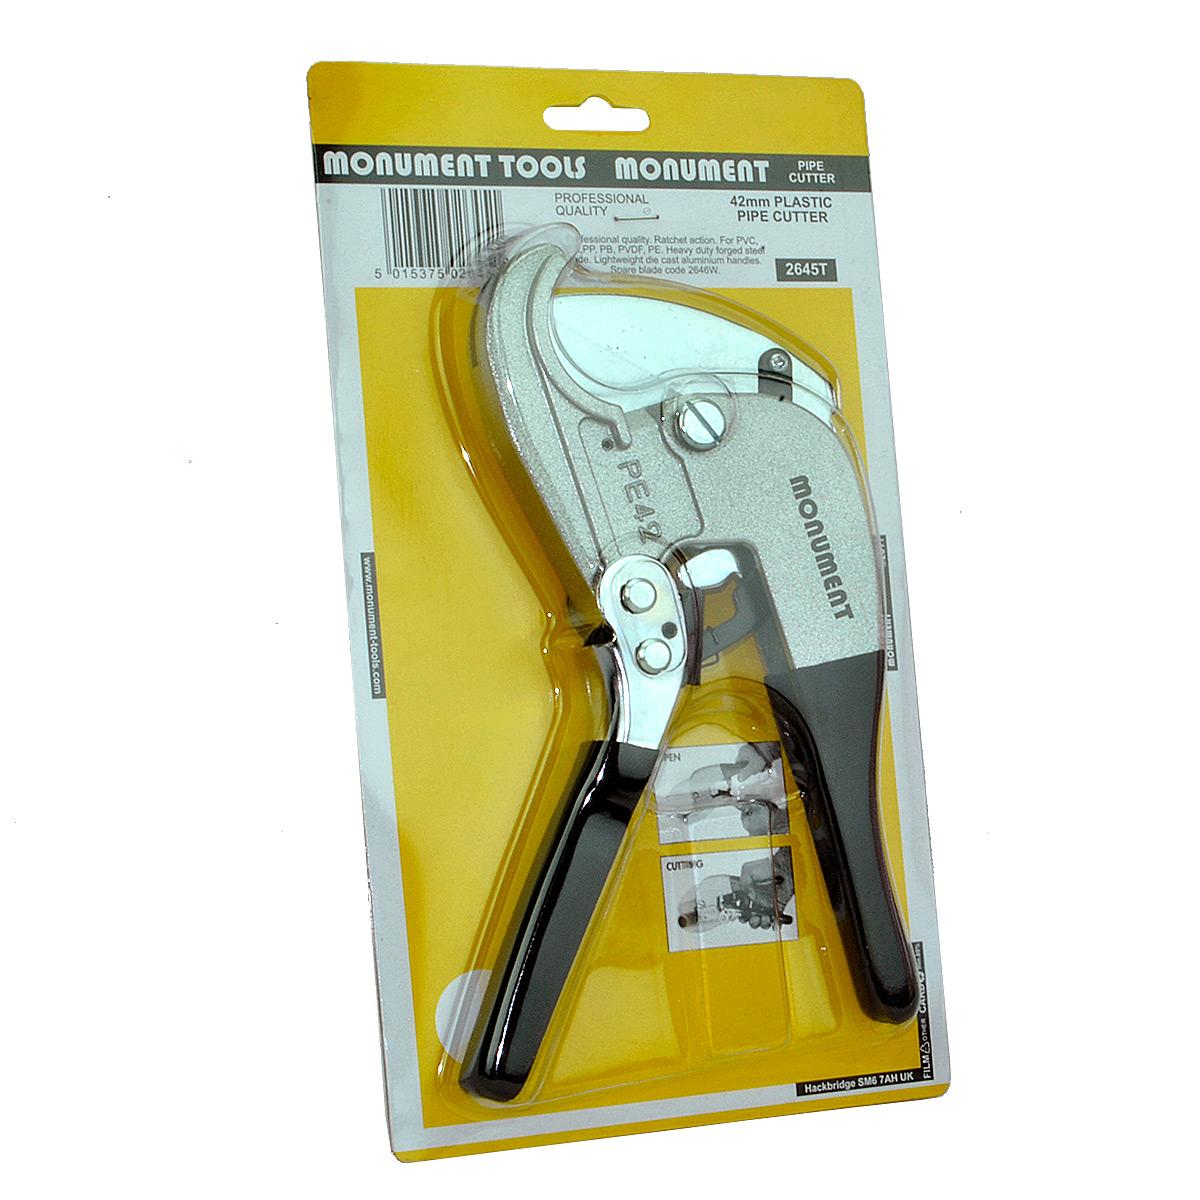 Monument 2645T Plastic Pipe Cutter 42mm lowest price